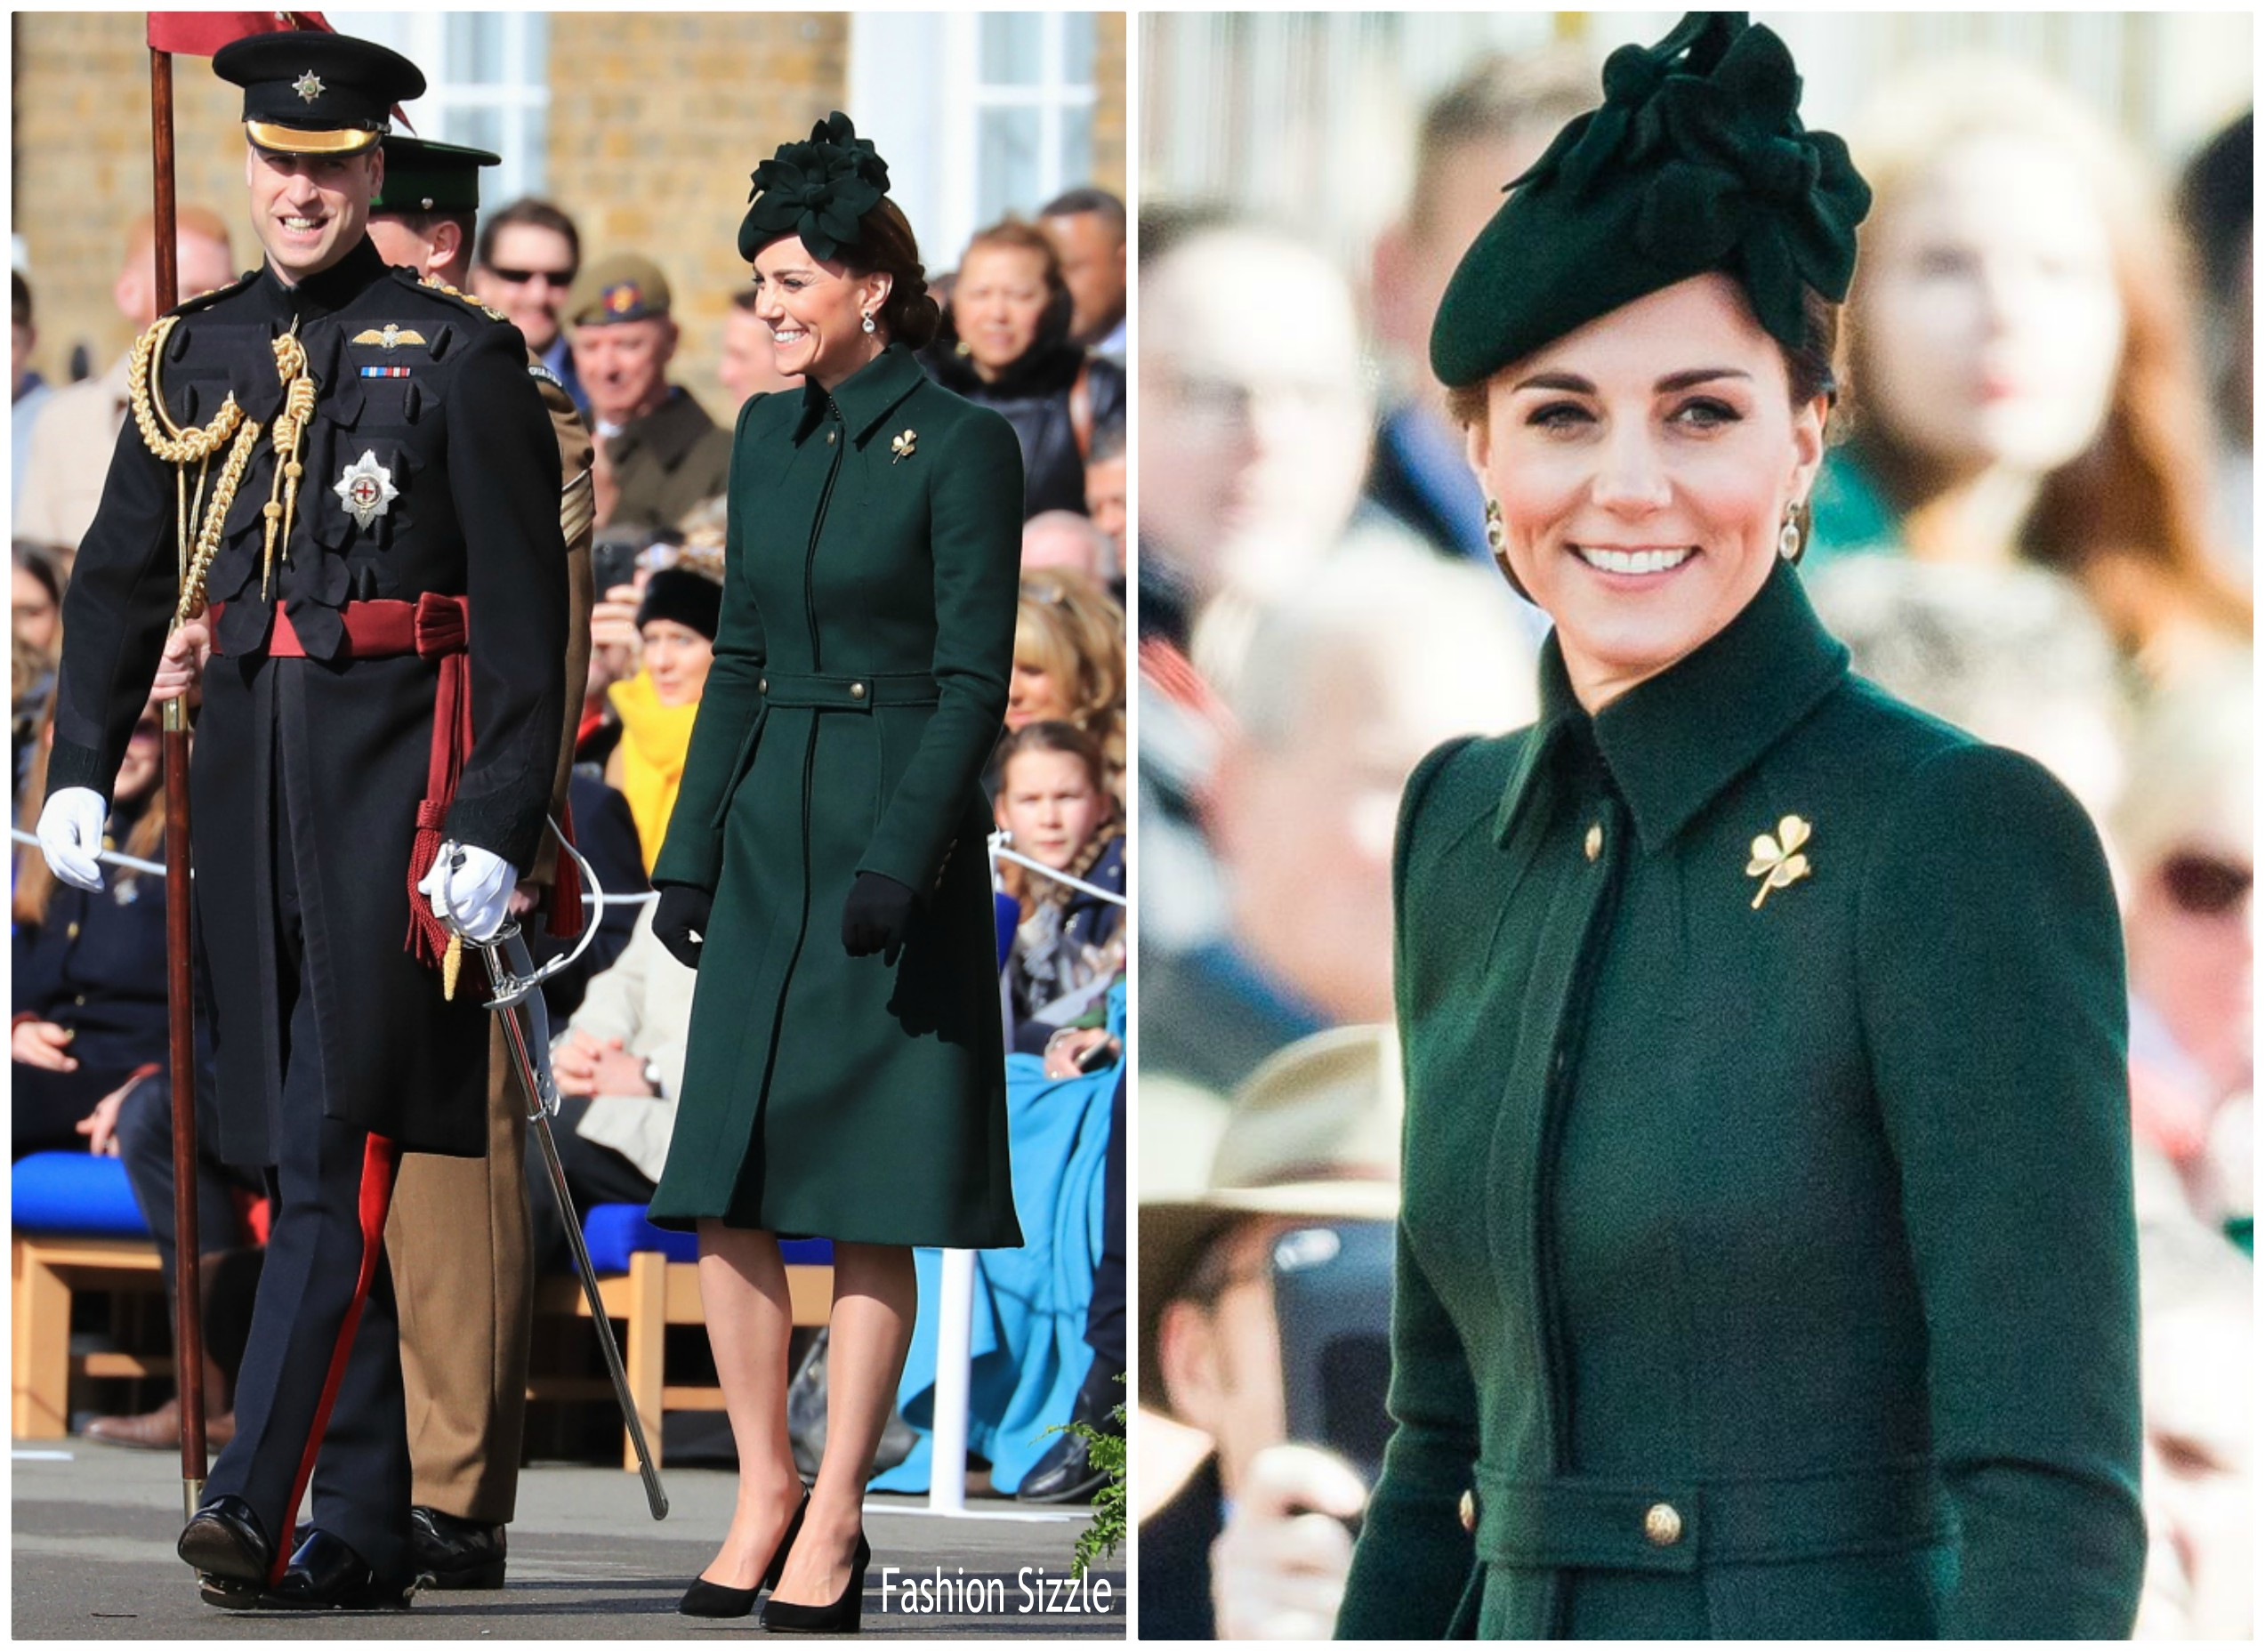 catherine-duchess-of-cambridge-in-alexander-mcqueen-the-irish-guards-st-patricks-day-parade